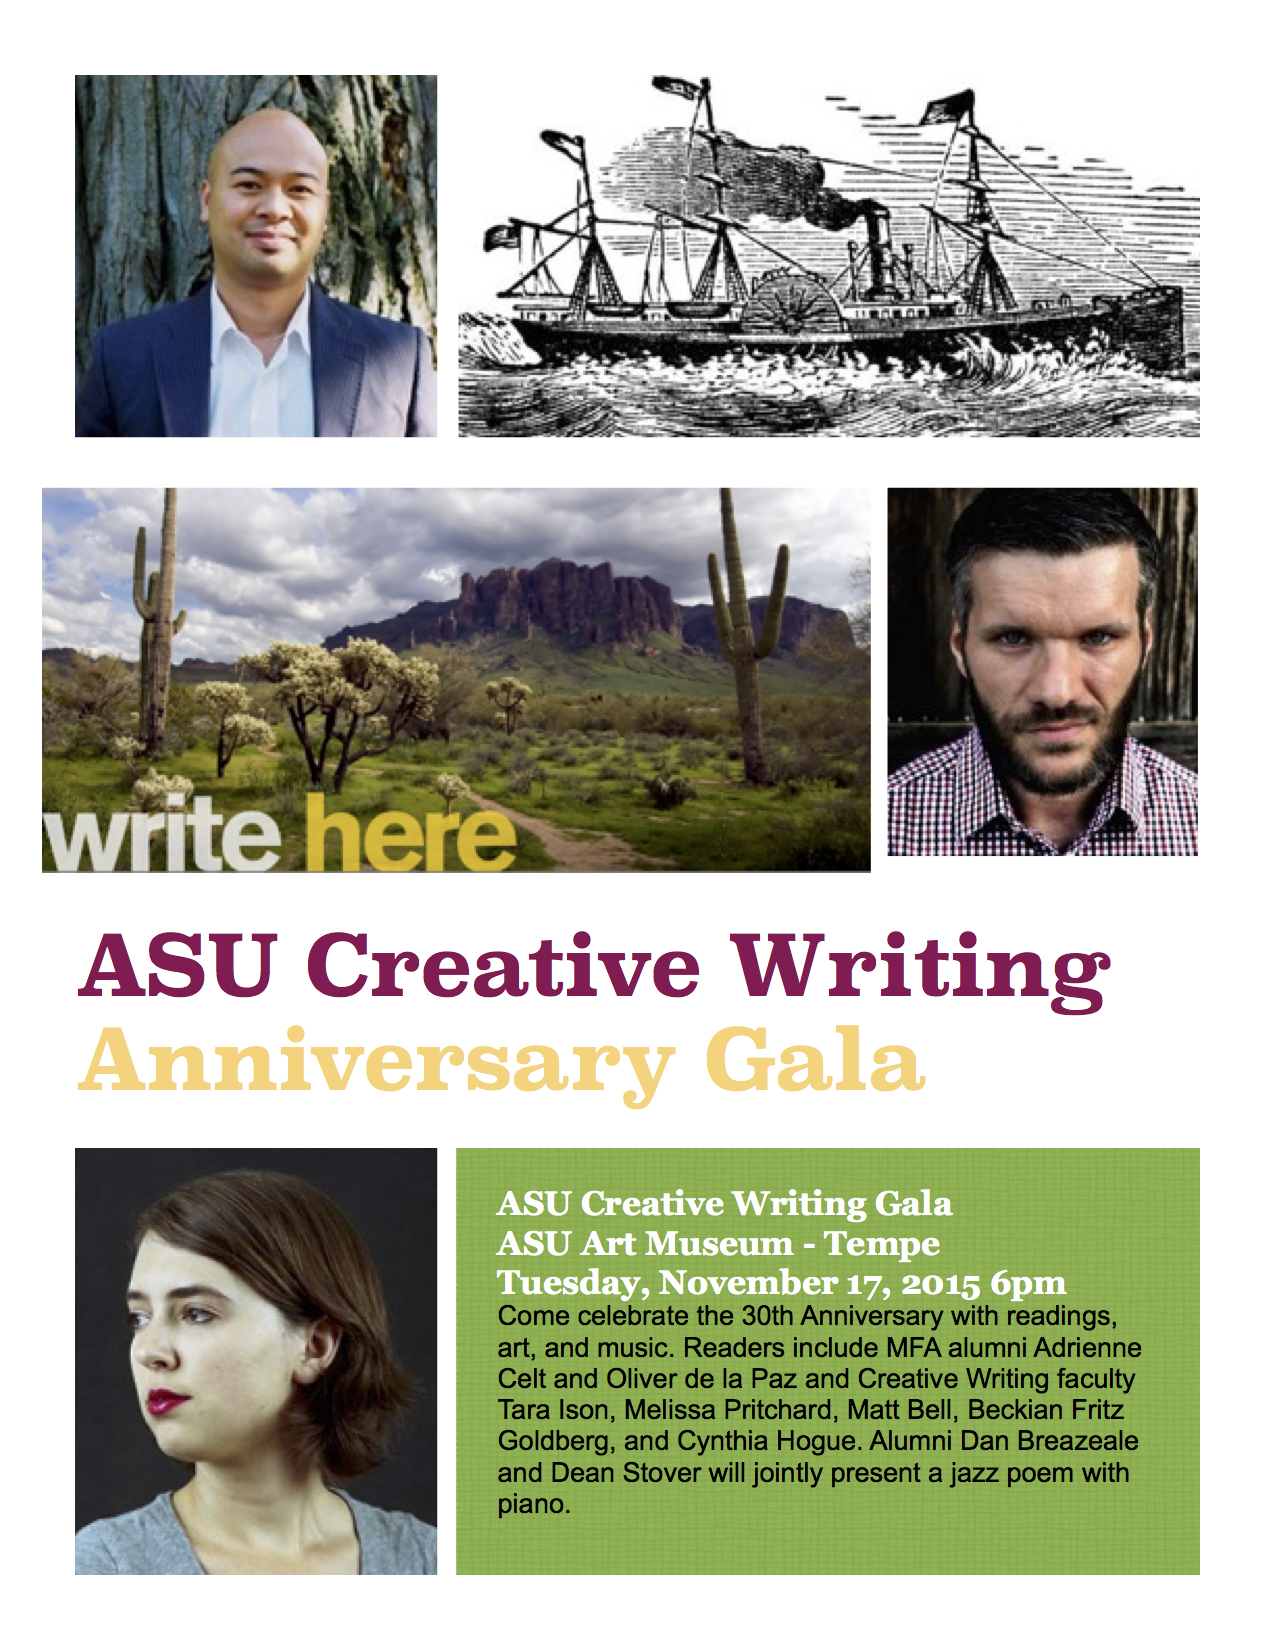 Asu creative writing